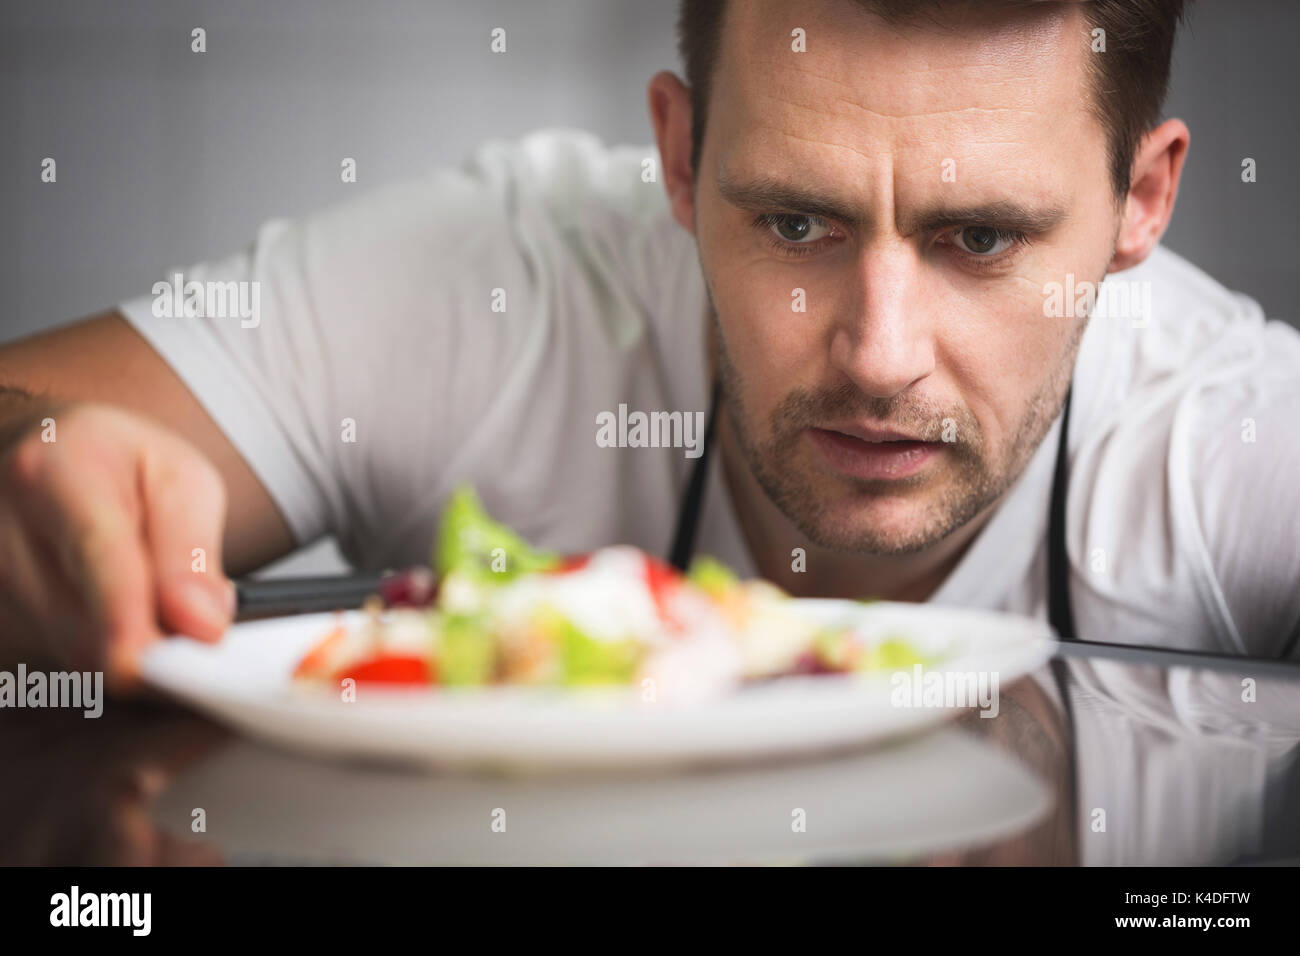 Close up front portrait of male chef preparing salad - Stock Image